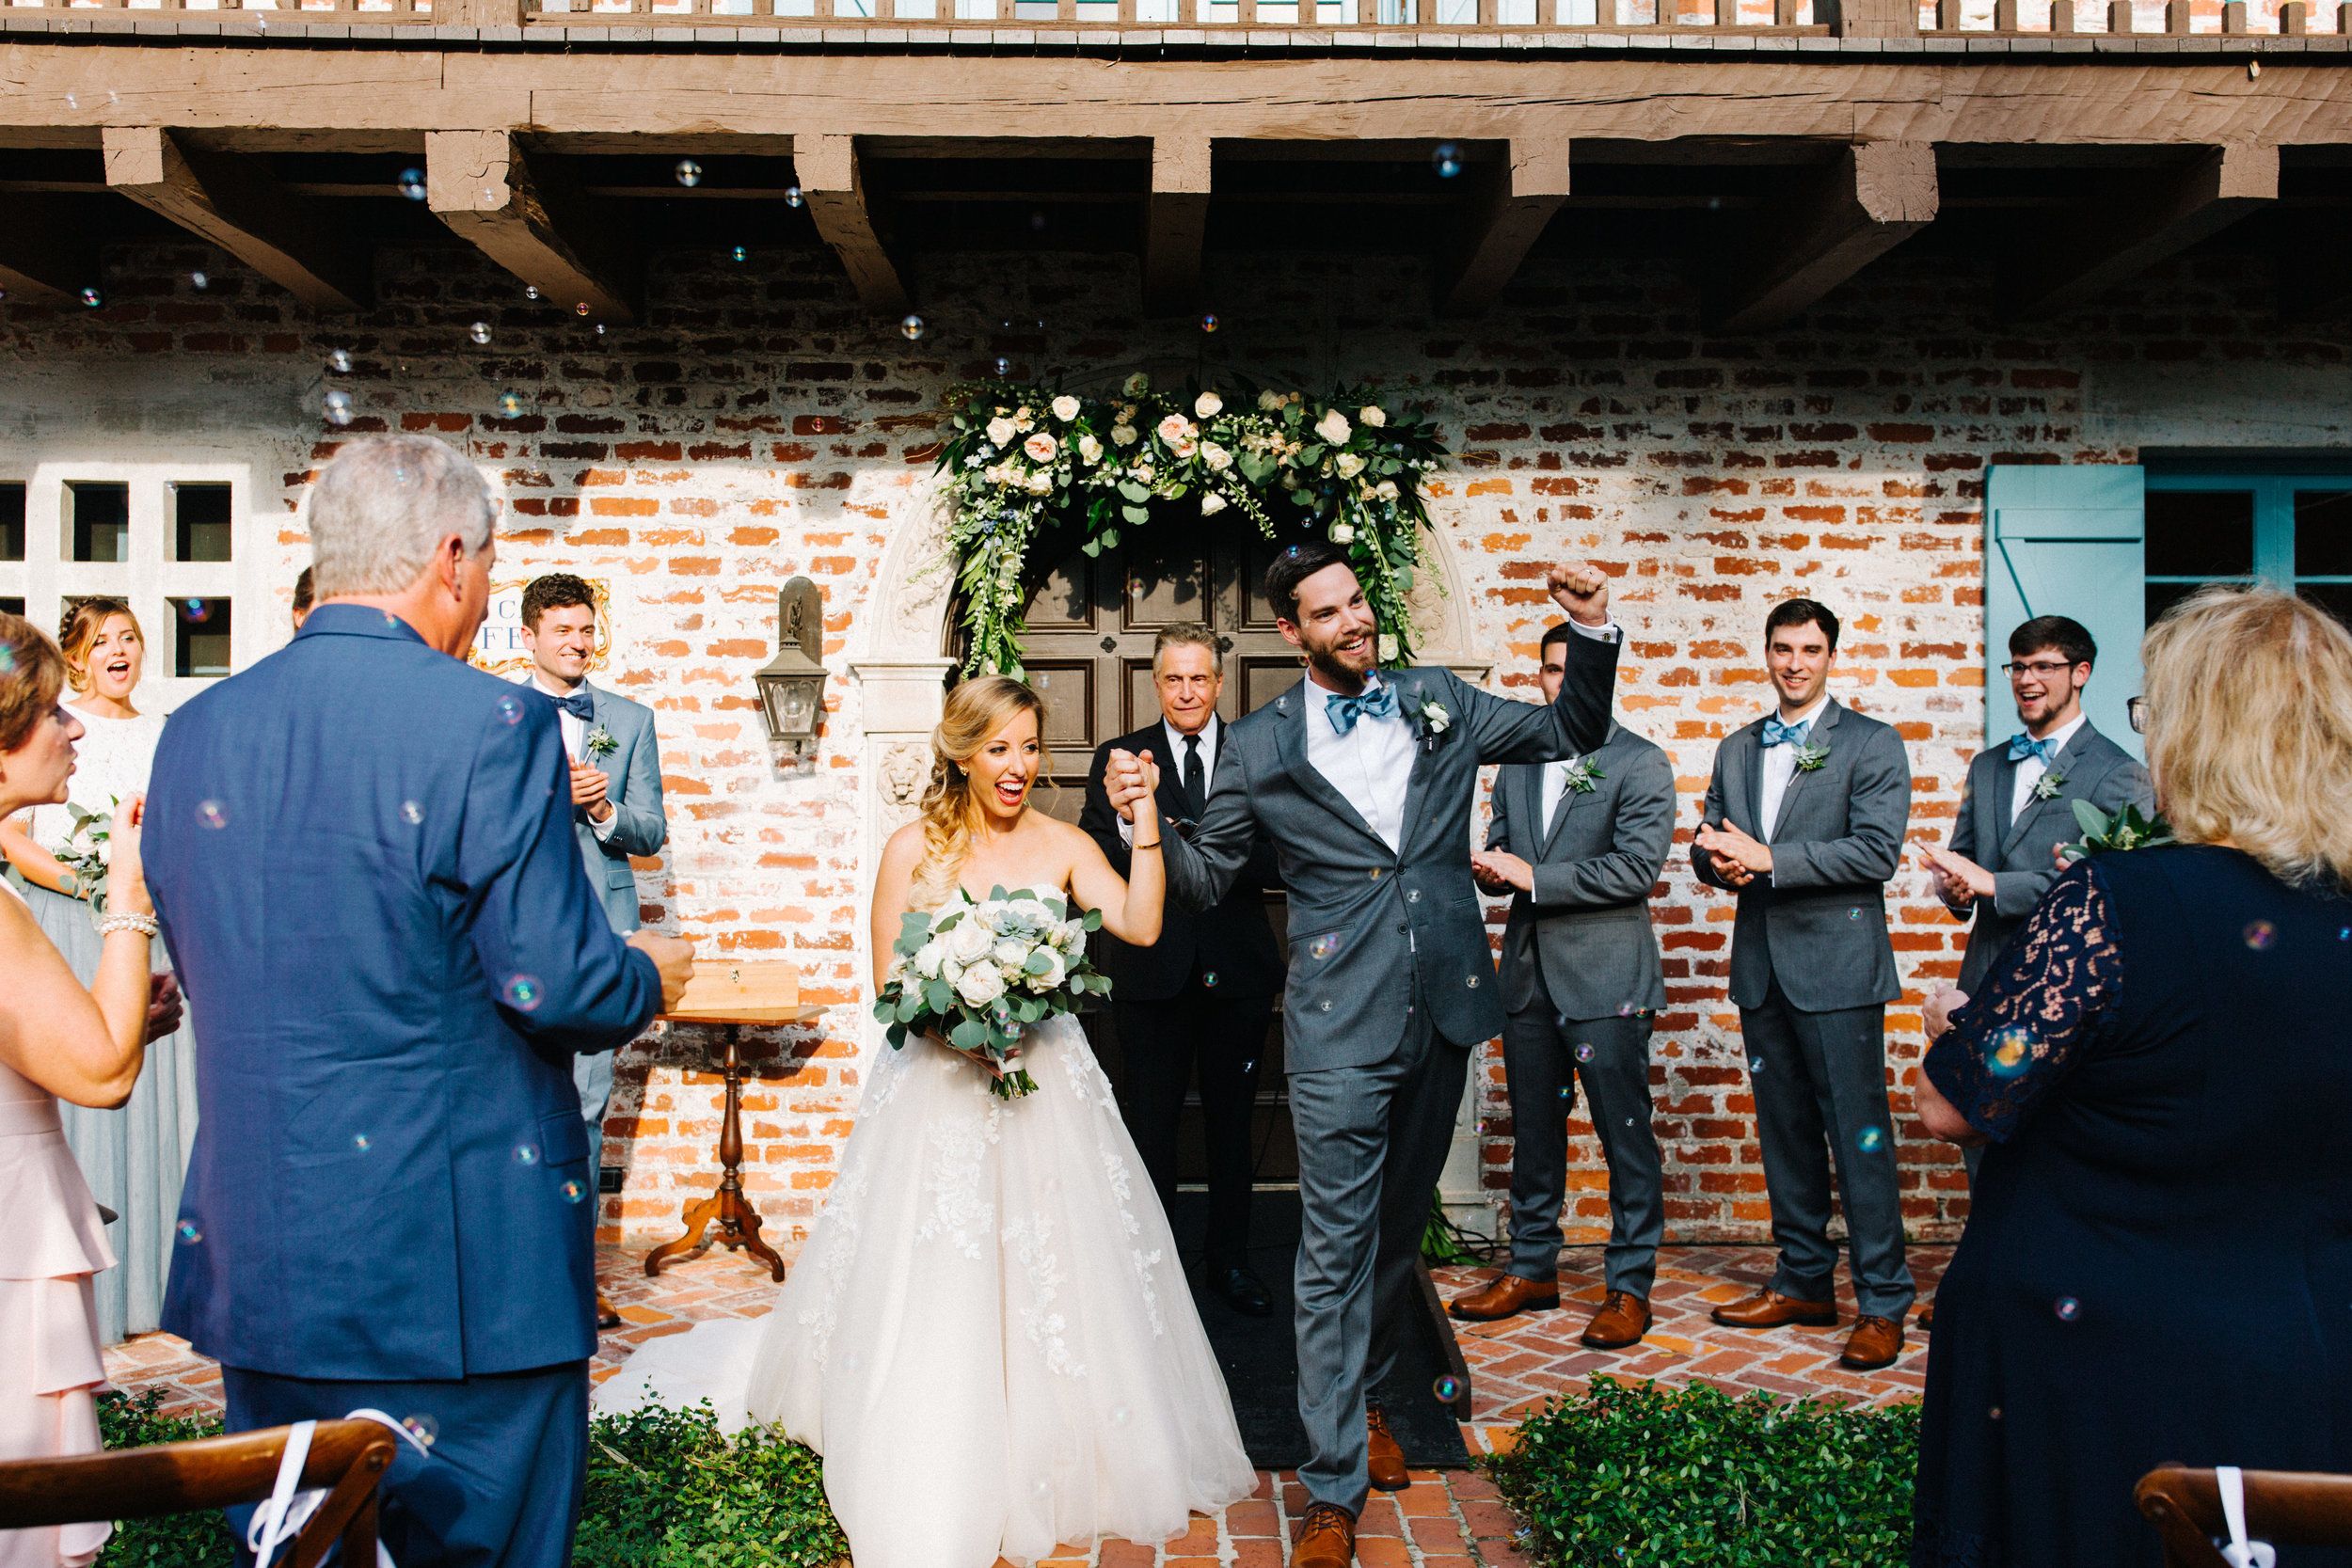 Orlando-Wedding-Photographer_Wedding-at-Casa-Feliz_Kaylin-and-Evan_Orlando-FL0655.jpg